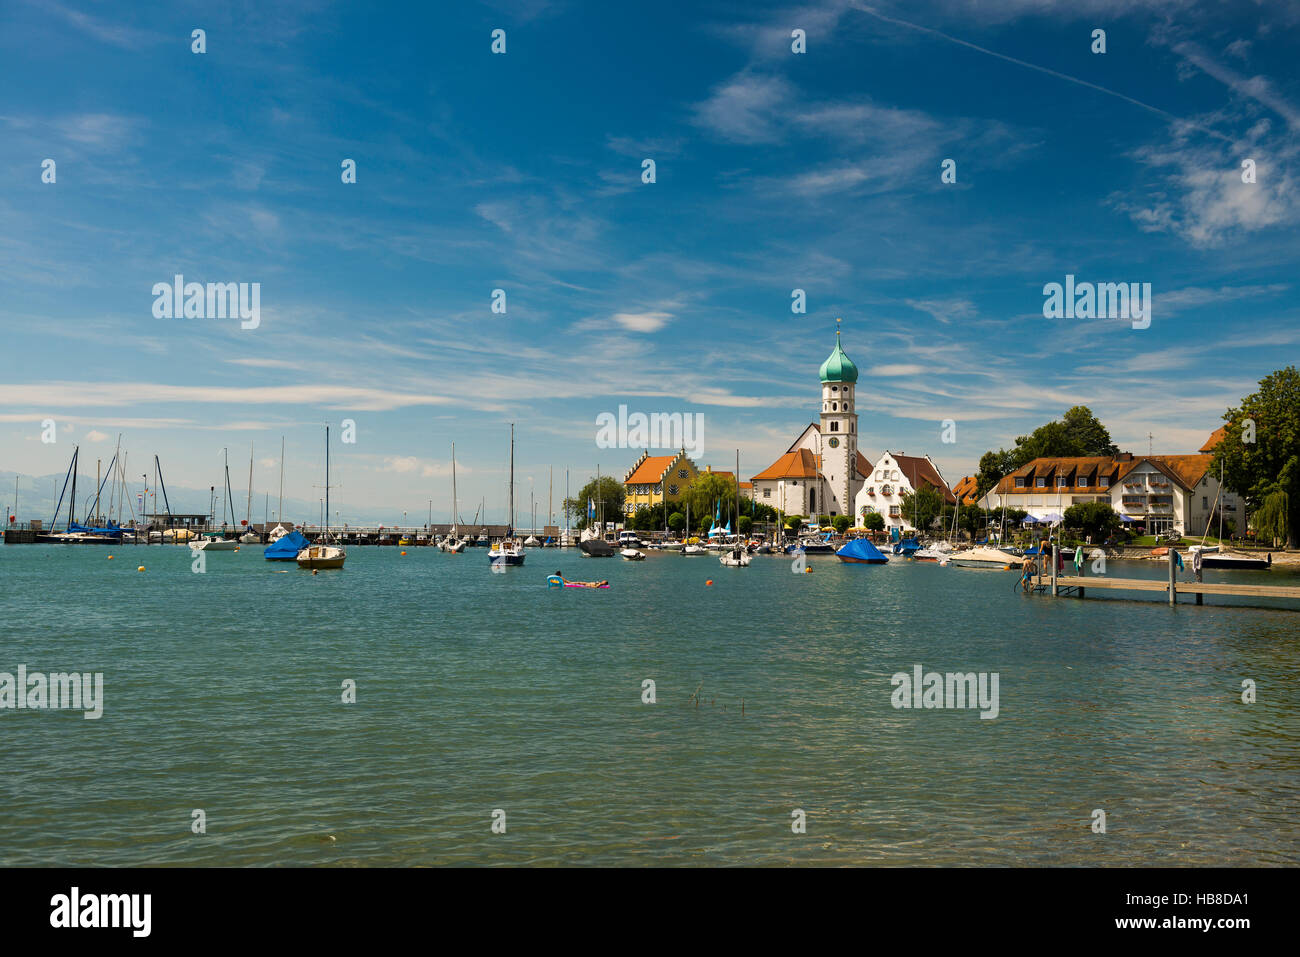 Saint George Church, moated castle, UNESCO World Heritage Site, Lake Constance, Bavaria, Germany - Stock Image